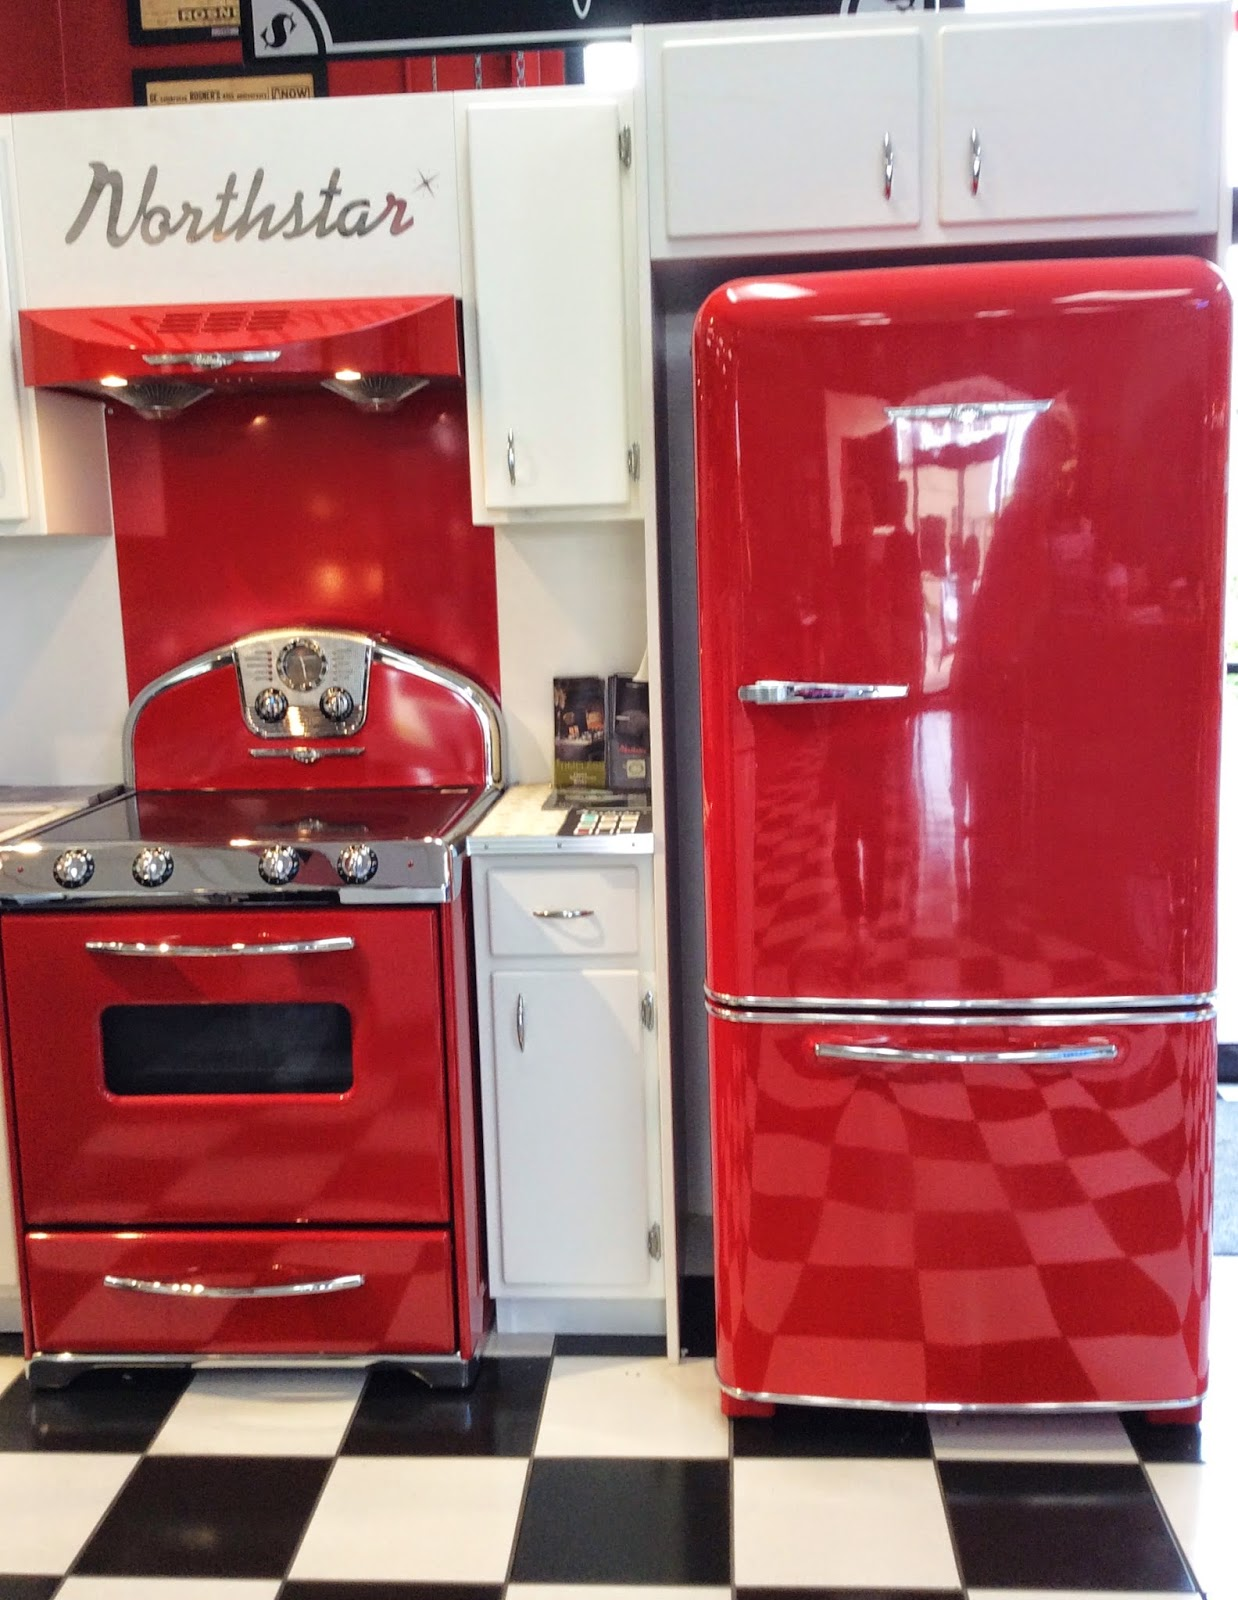 Uncategorized Vintage Style Kitchen Appliance decor dreams schemes whats new in kitchen appliances or these red vintage style are showstoppers the black and white tile just adds to retroness